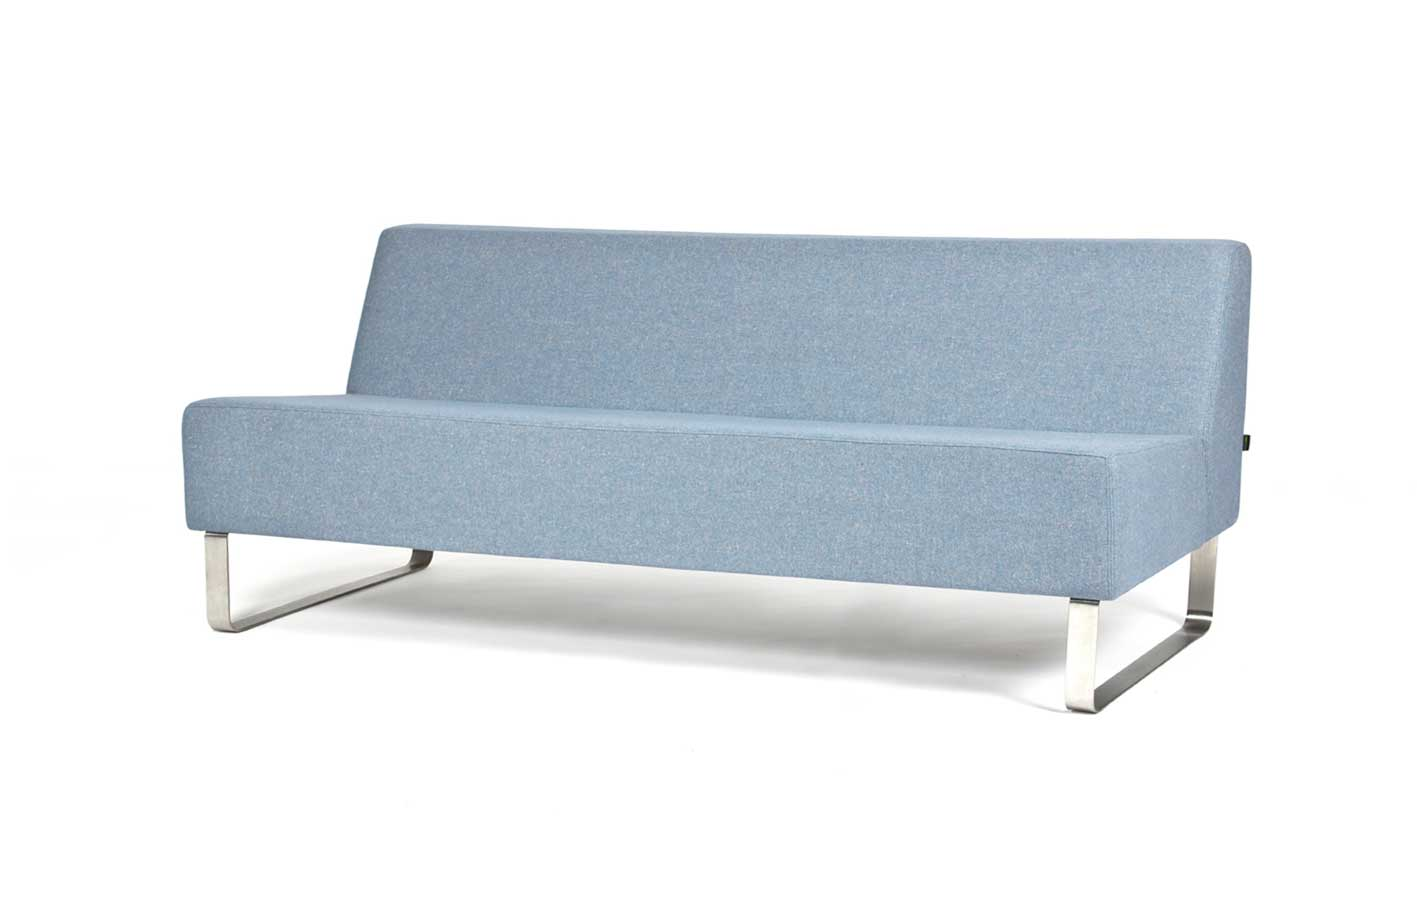 Settee No Arms Sofa Without Arms Arm Designs